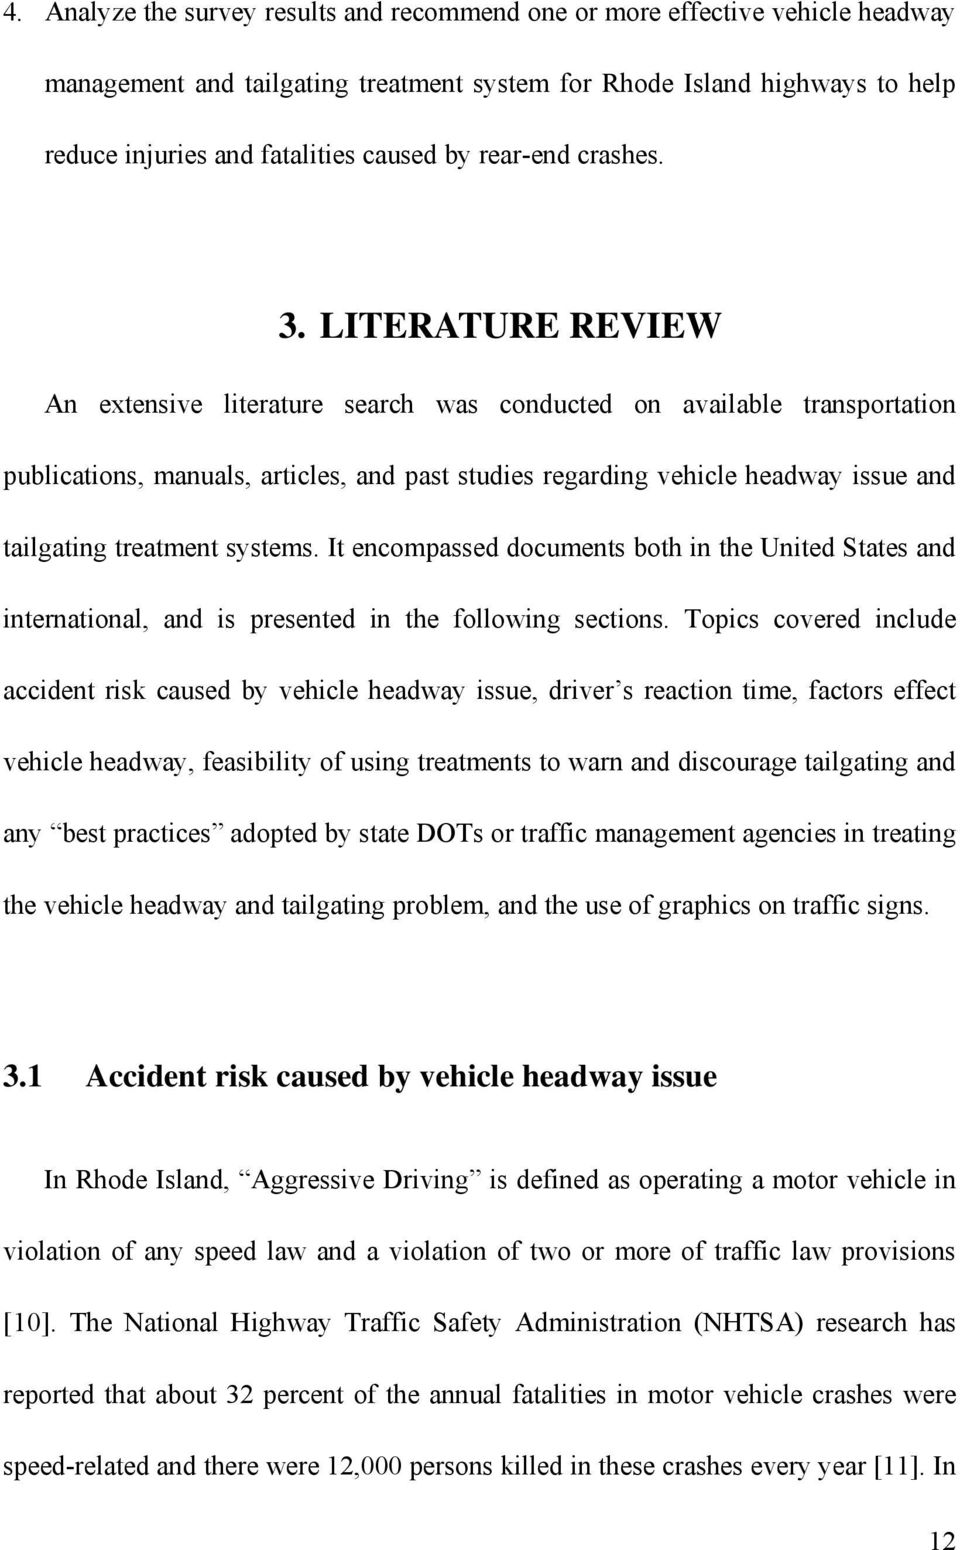 LITERATURE REVIEW An extensive literature search was conducted on available transportation publications, manuals, articles, and past studies regarding vehicle headway issue and tailgating treatment